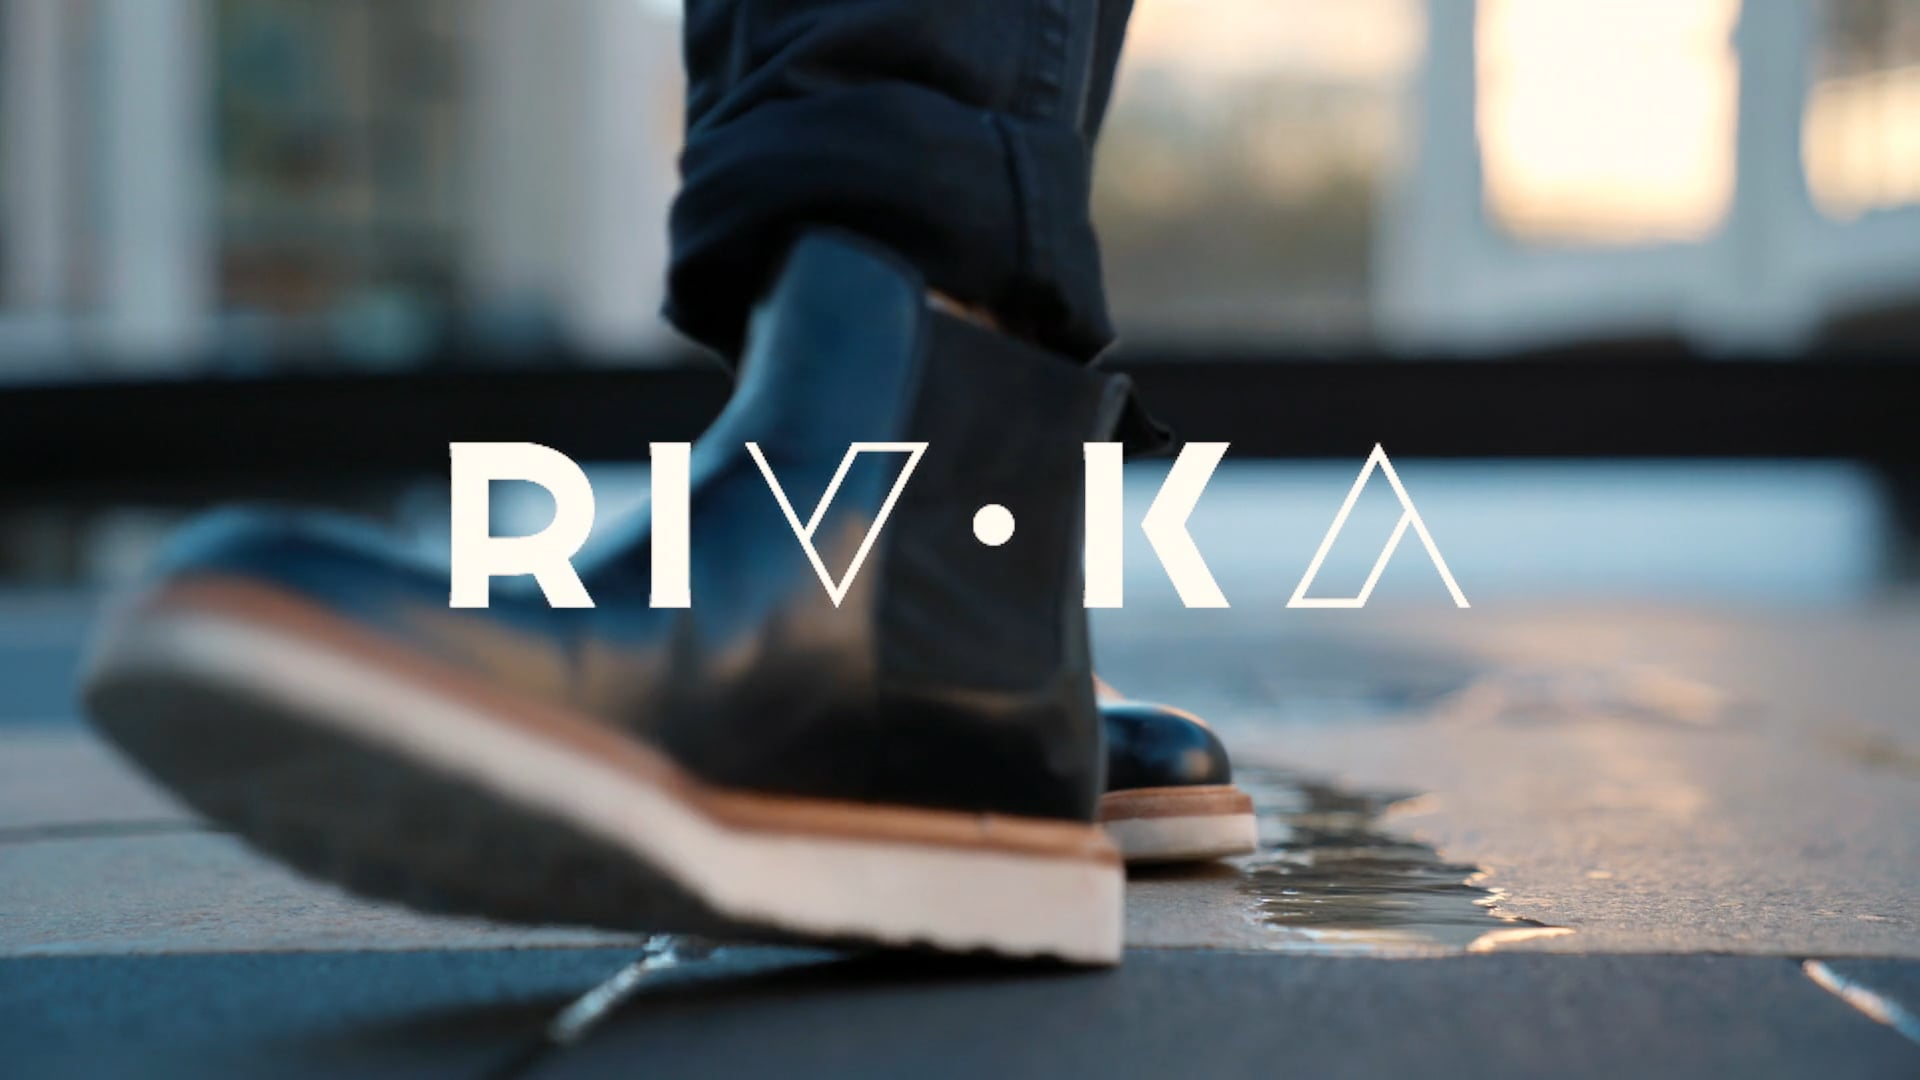 RIVKA Shoes Commercial - Part III